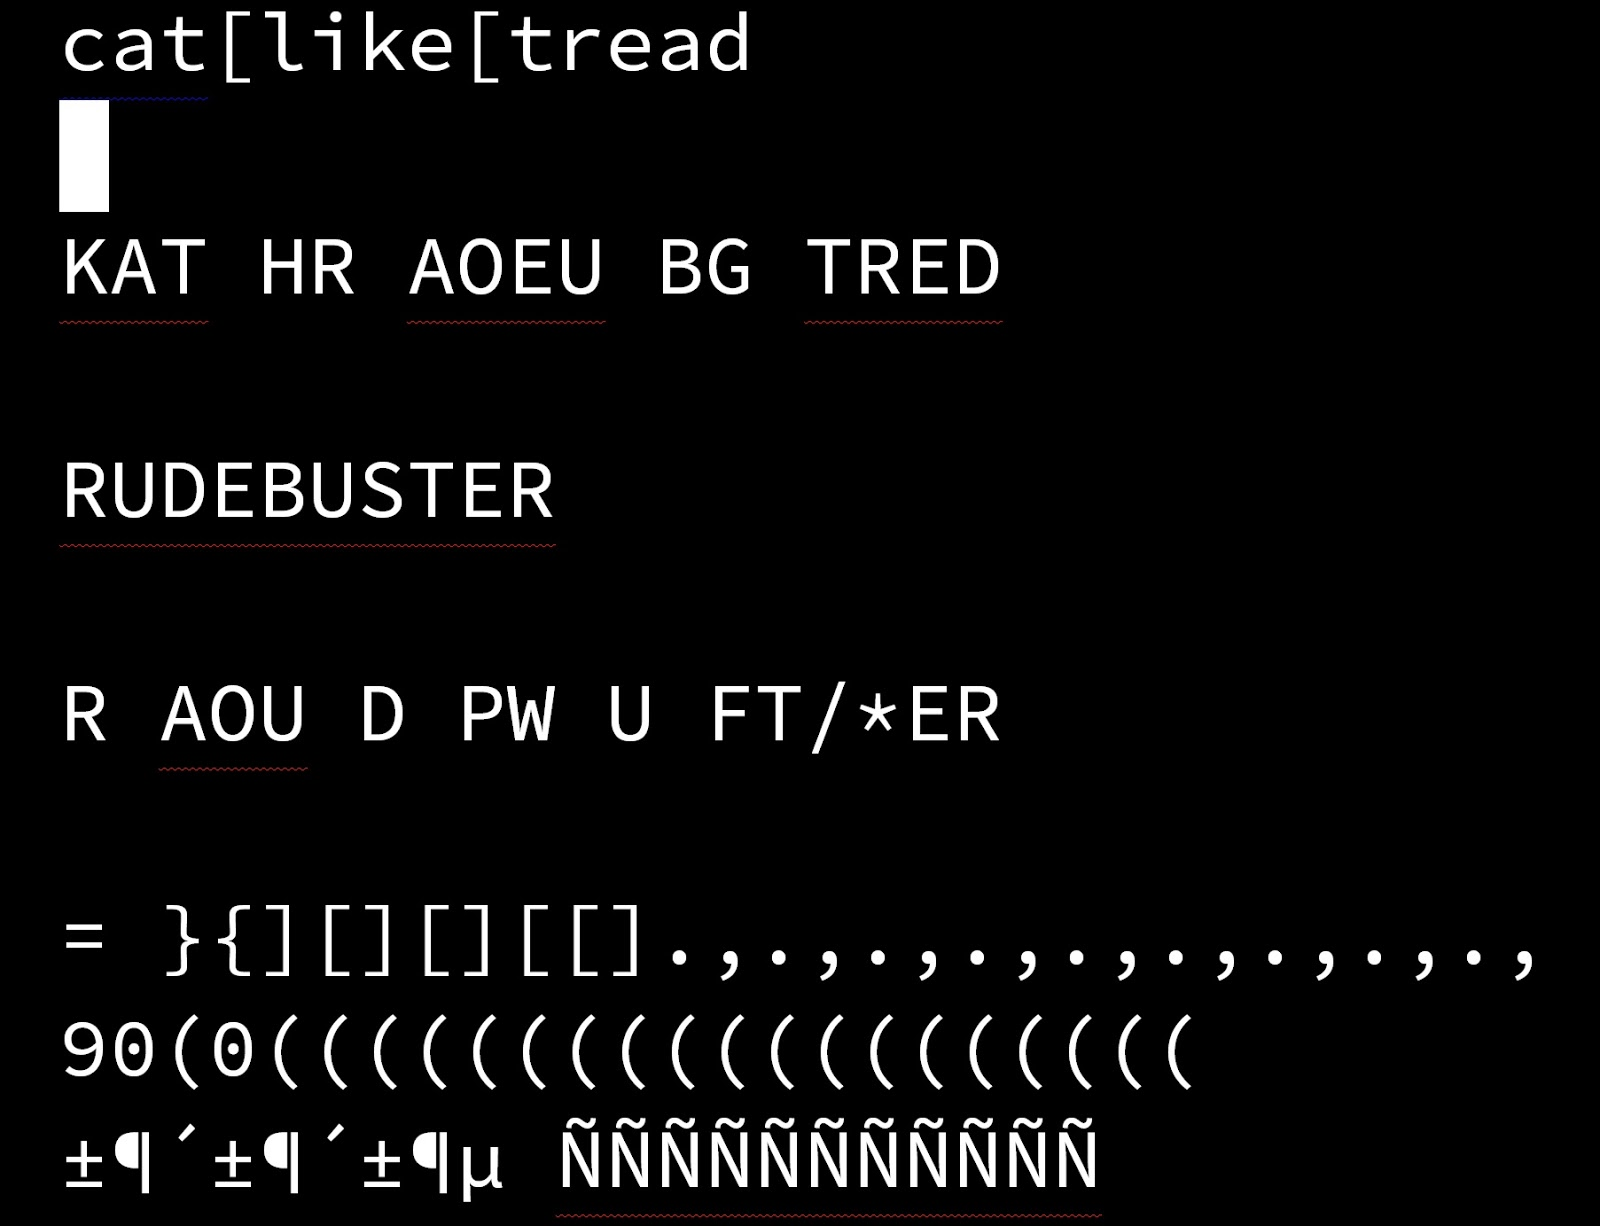 a vim window reading catlike tread and rudebuster in English and steno, plus some random special characters